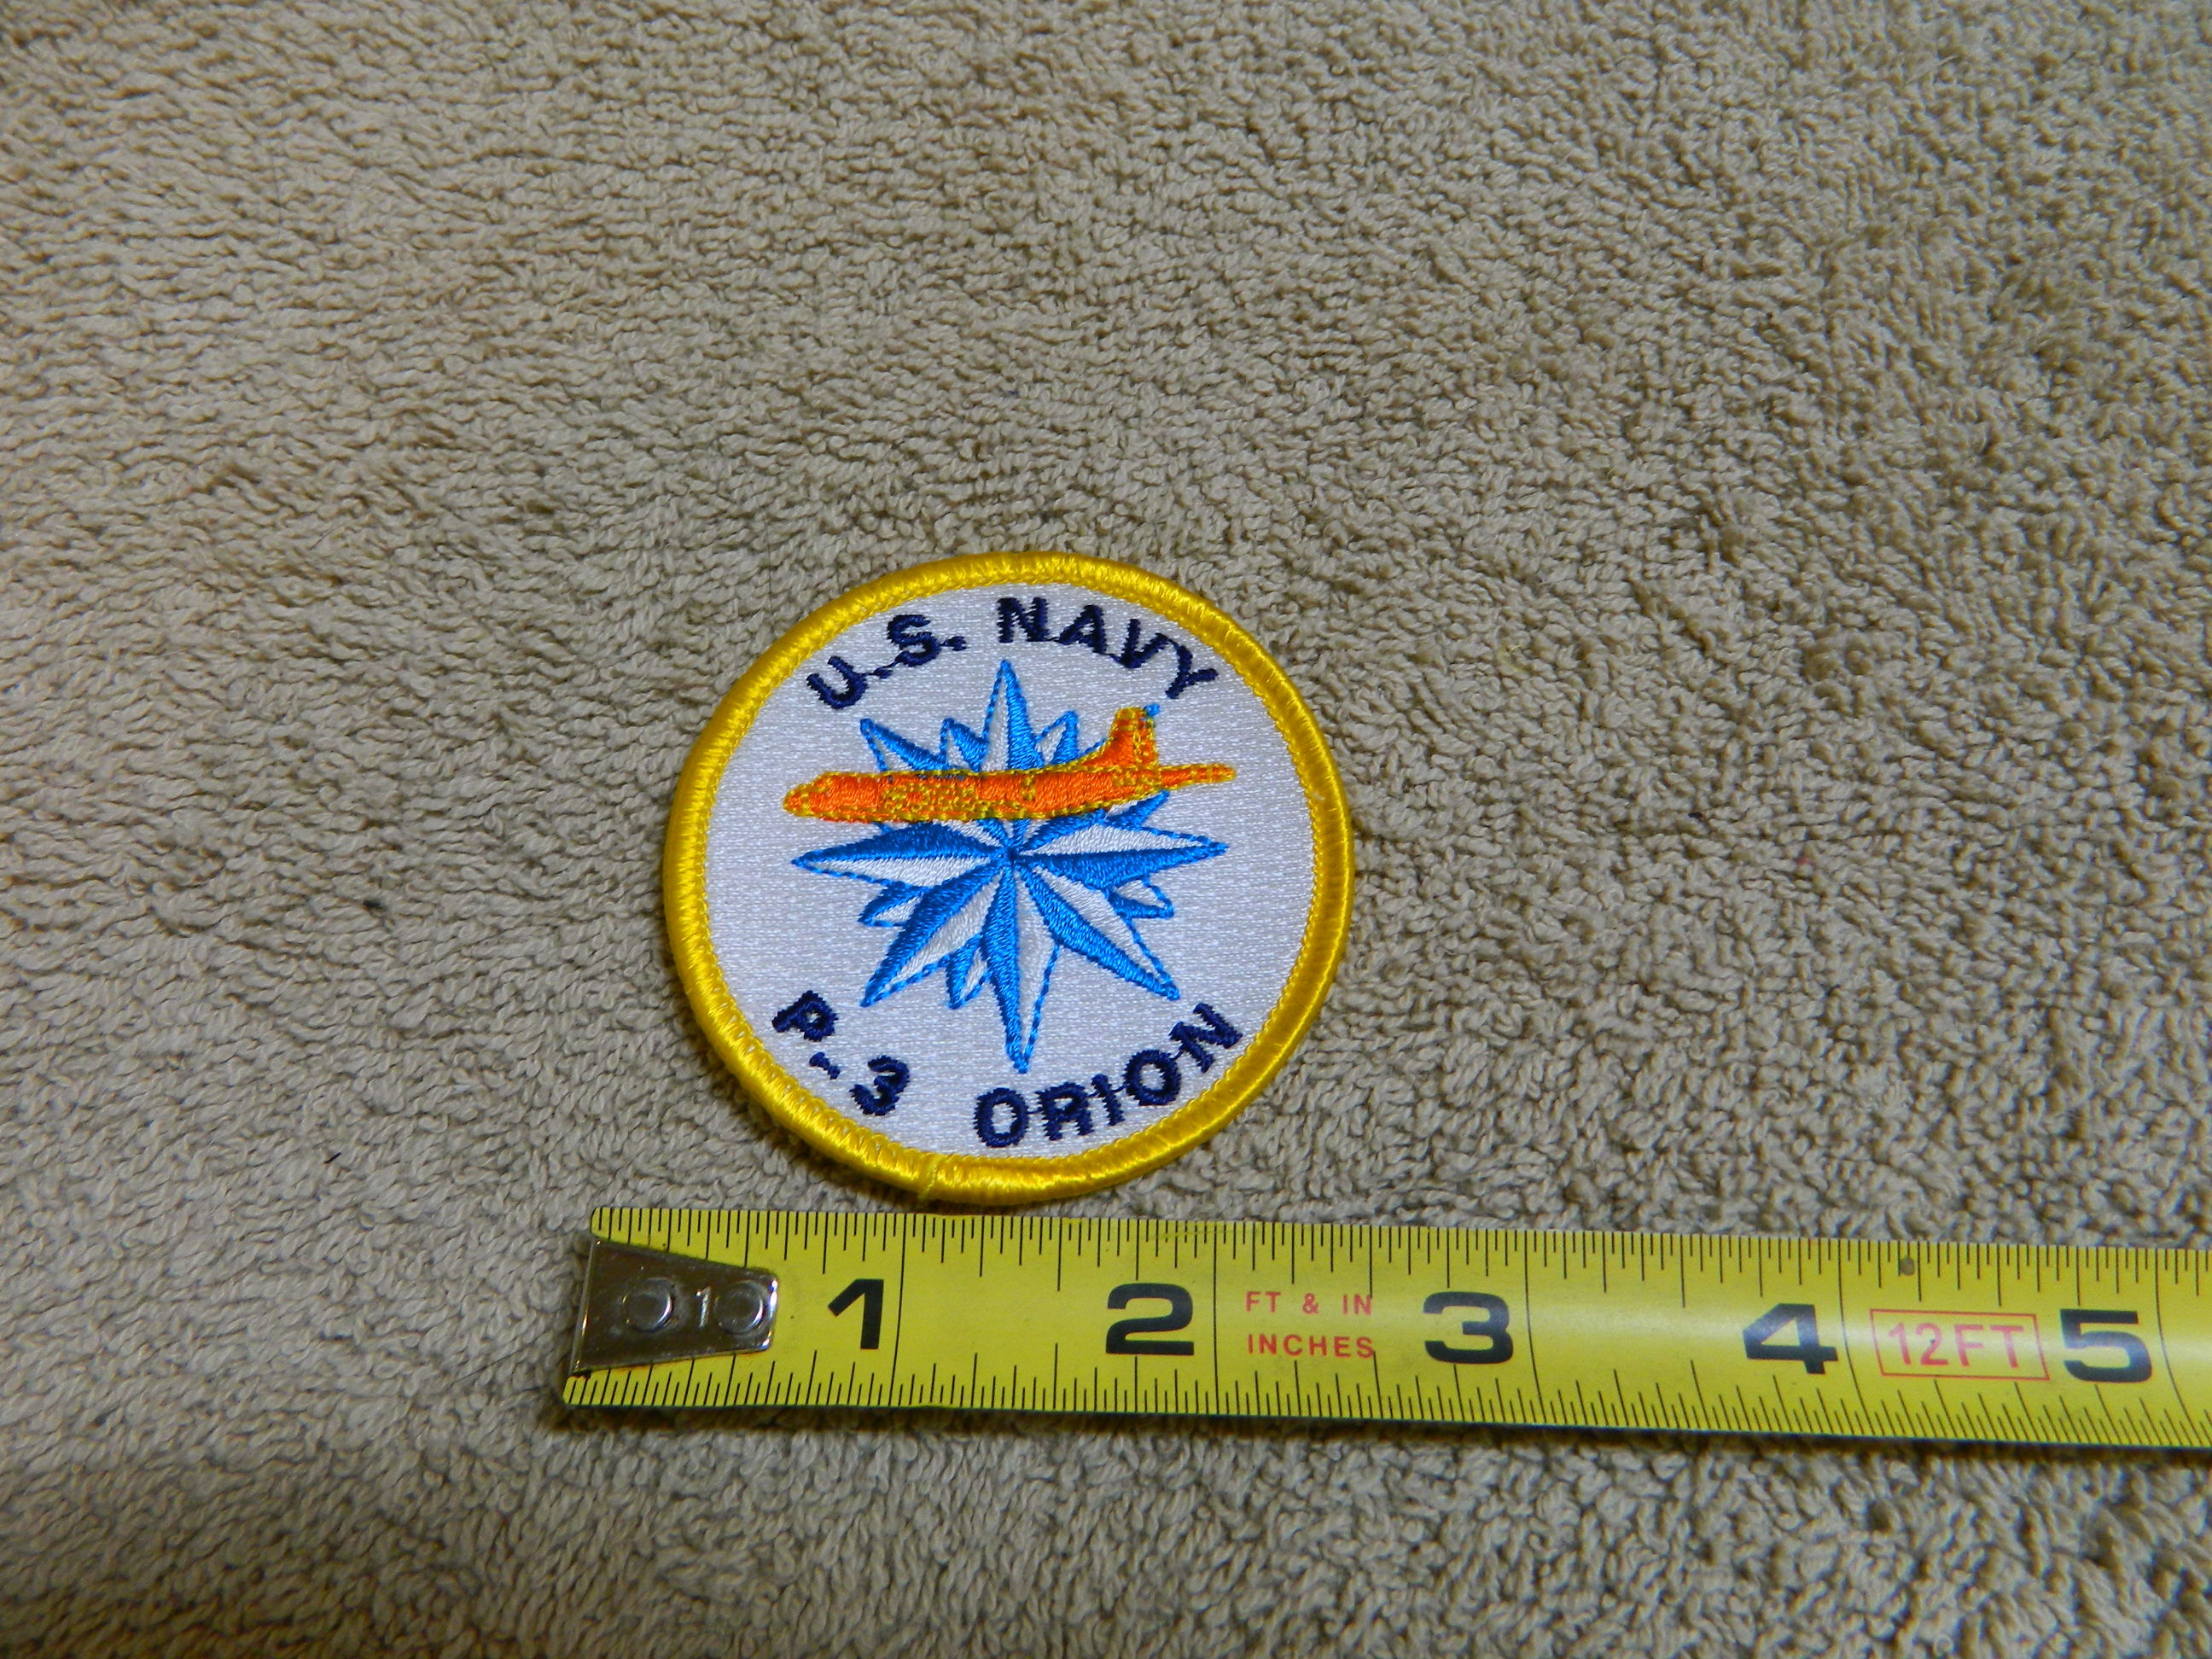 USN: U.S. NAVY P-3 ORION- Small Color Patch